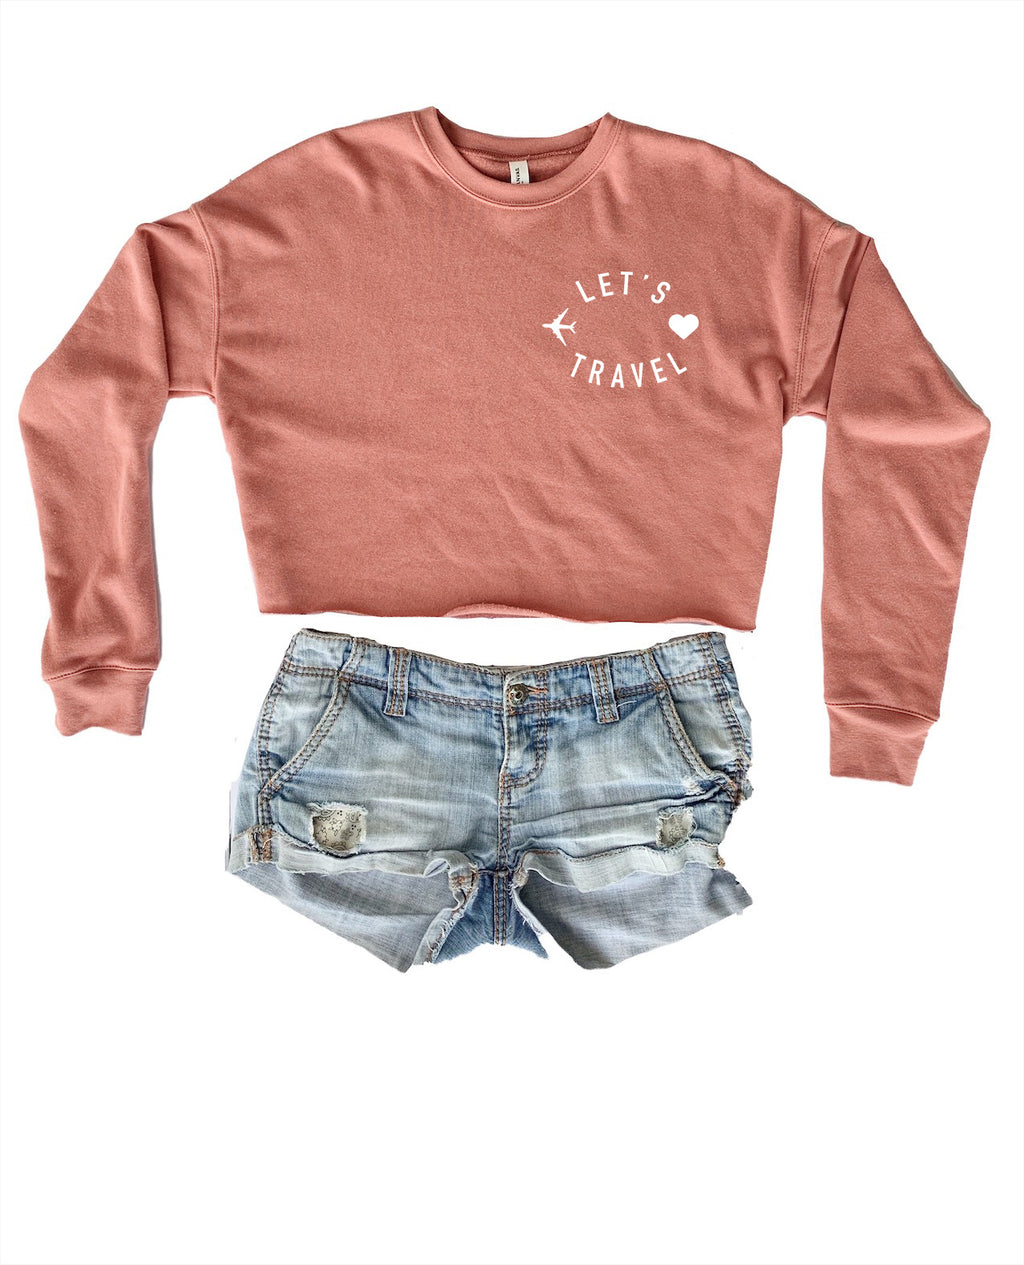 Travel the world in our soft travel sweatshirt! Wear this cute women's travel cropped sweater on your next vacation! Whether you're traveling out of the country or going on a road trip, this tee is perfect to be comfy and cozy!